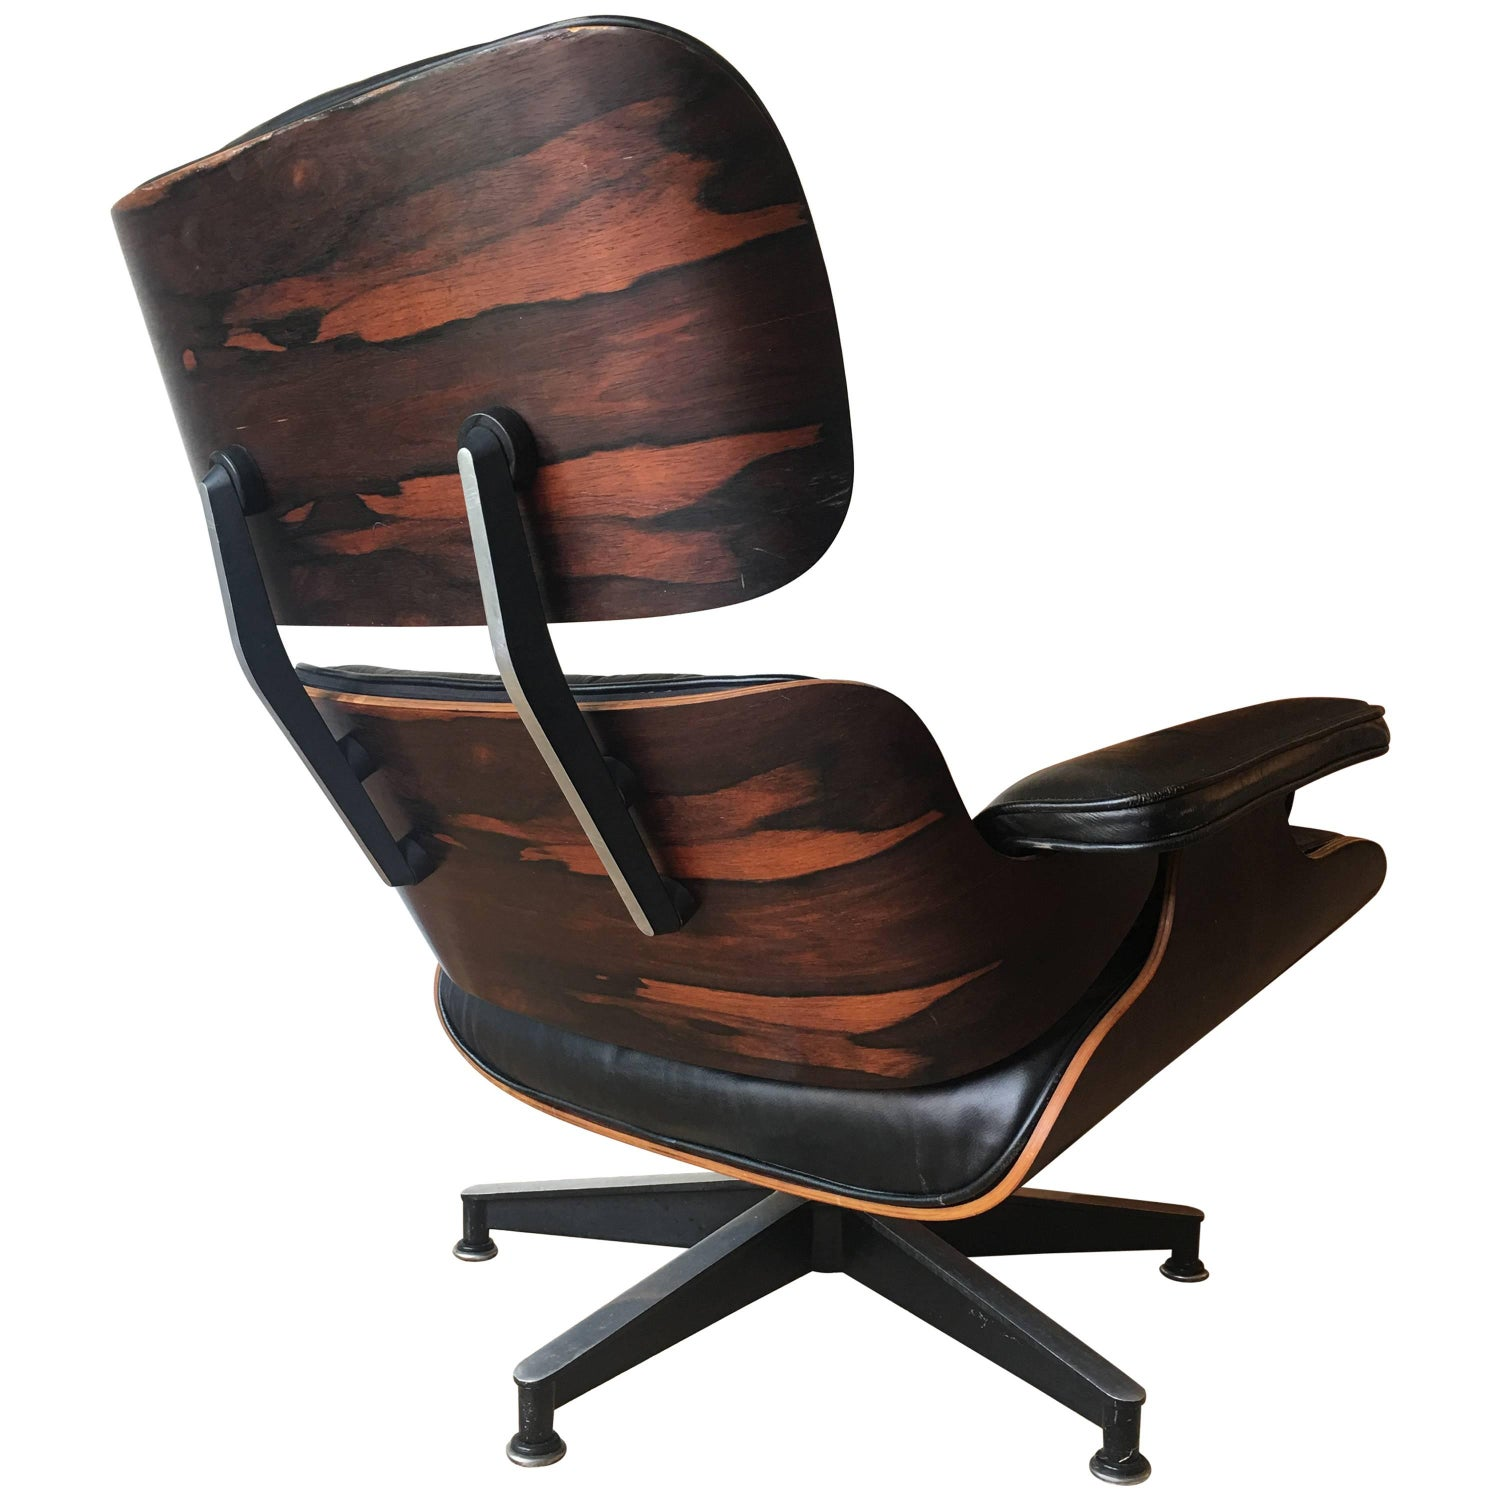 Herman Miller Lounge Chairs 169 For Sale at 1stdibs